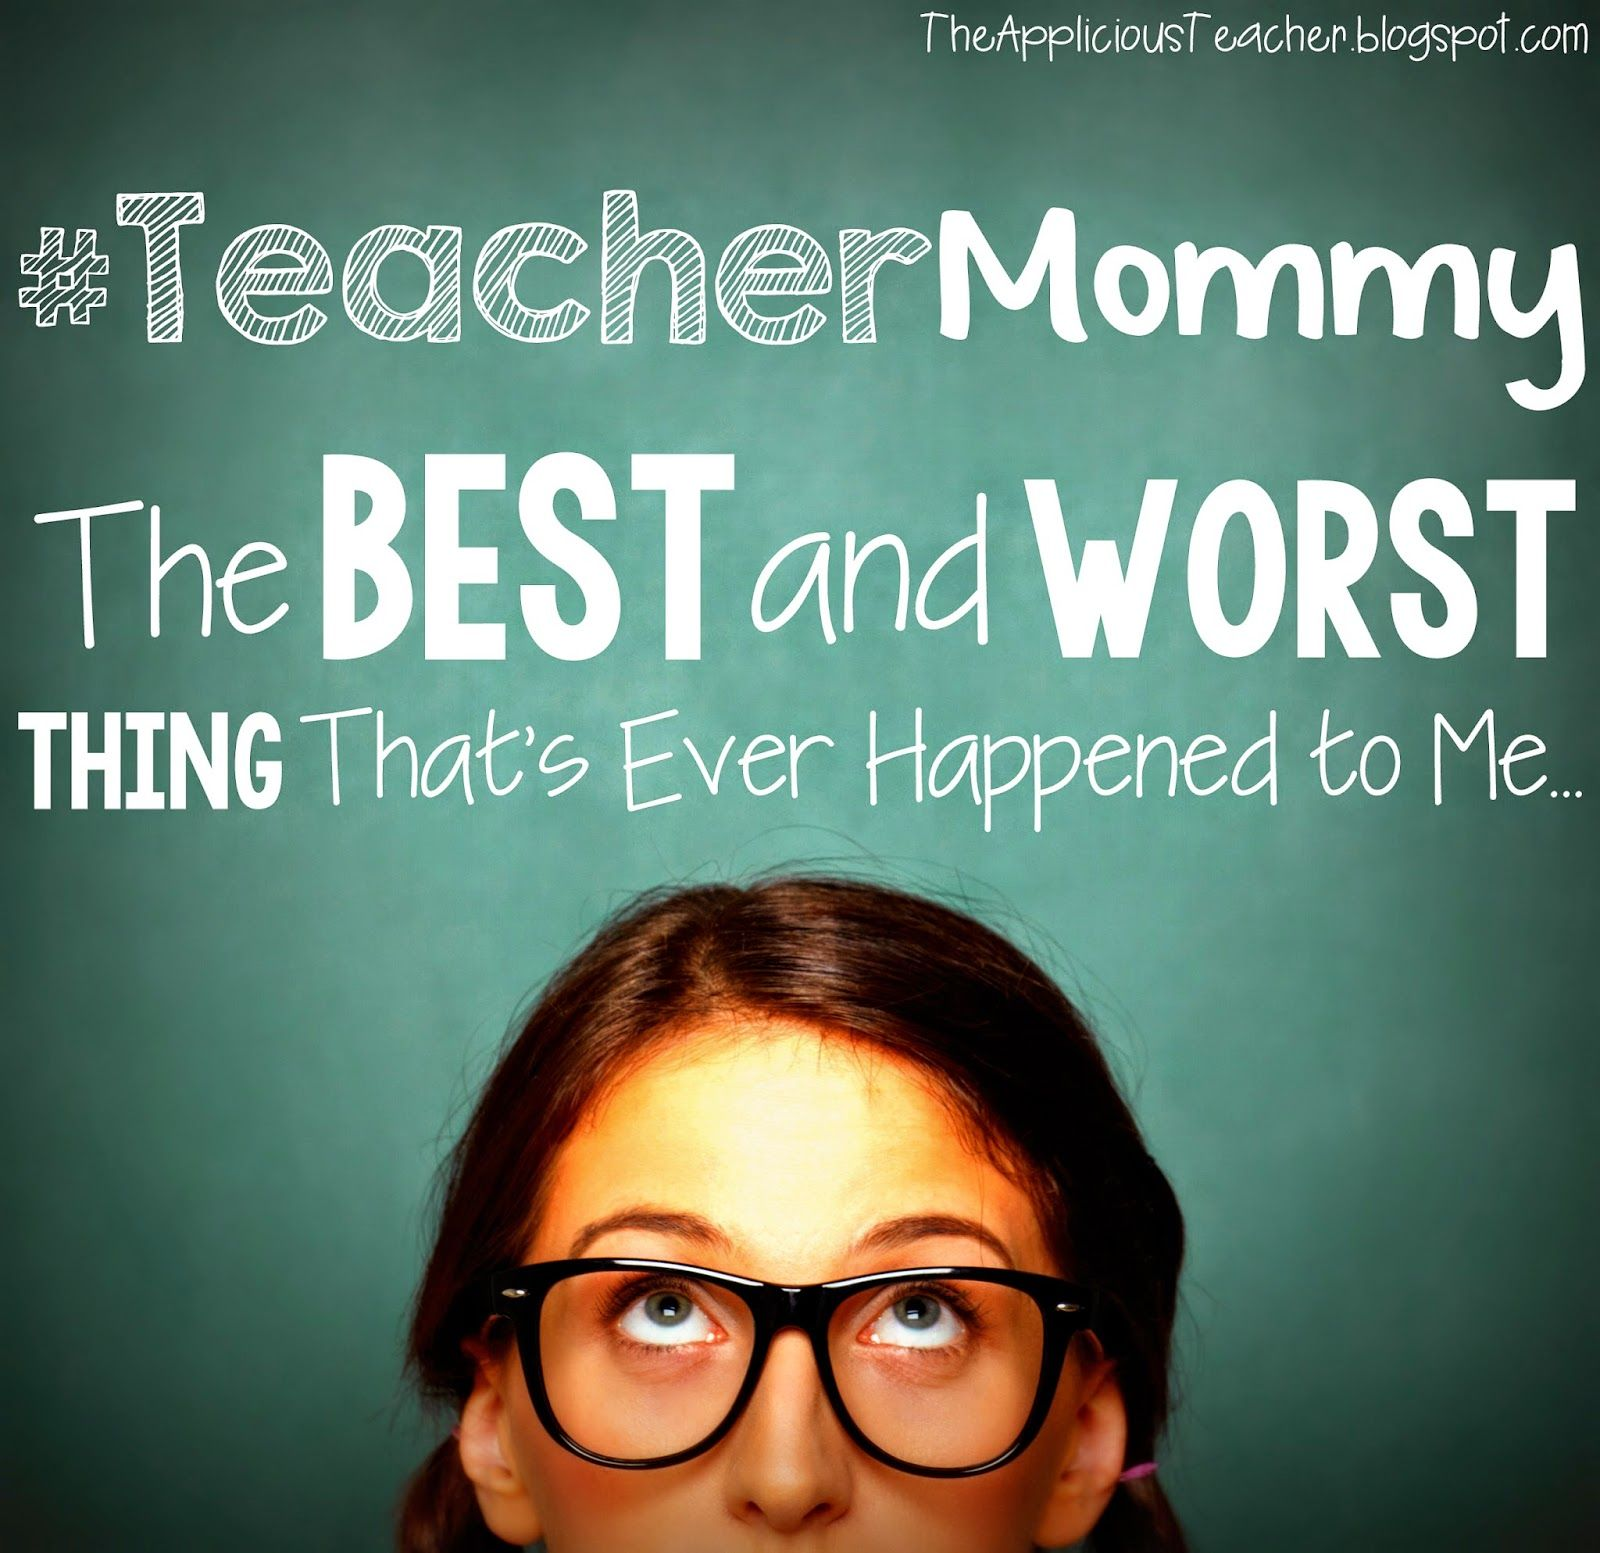 Being a teacher and a mommy is no joke!